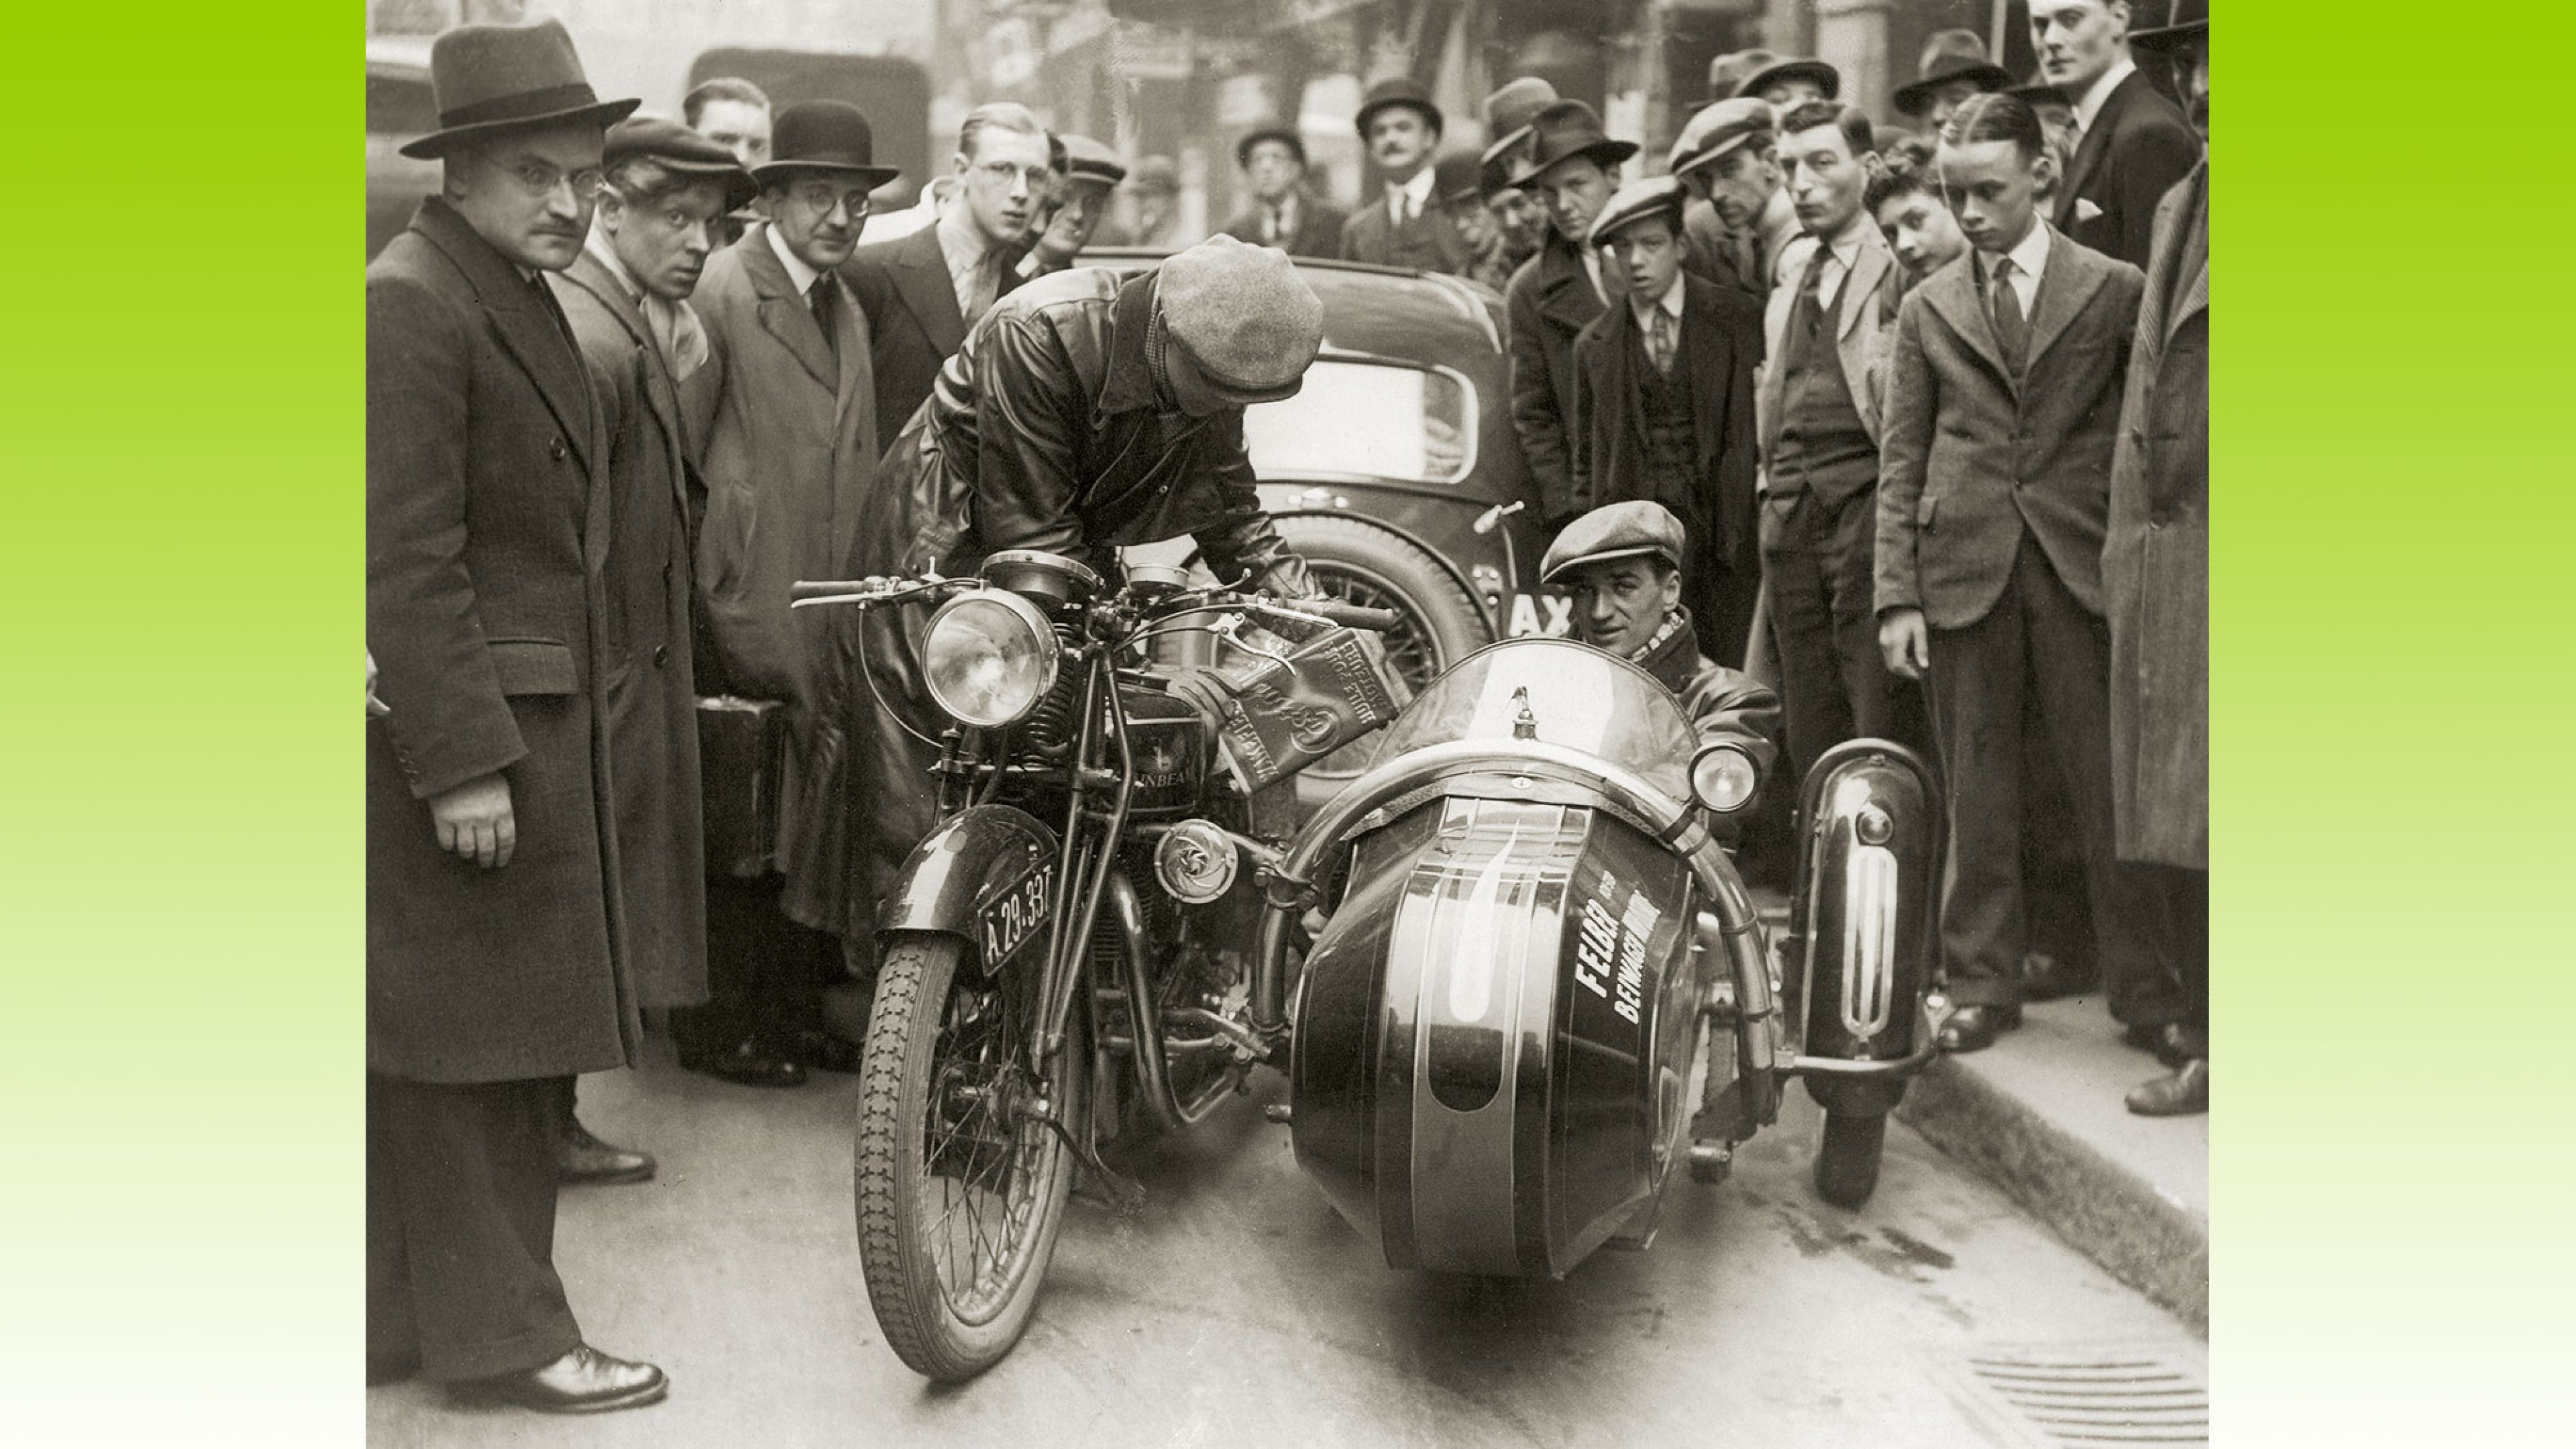 Crowds gather around a motorcycle as it is filled with Castrol lubricant, on its record-breaking drive from Vienna to Ostend in 1934